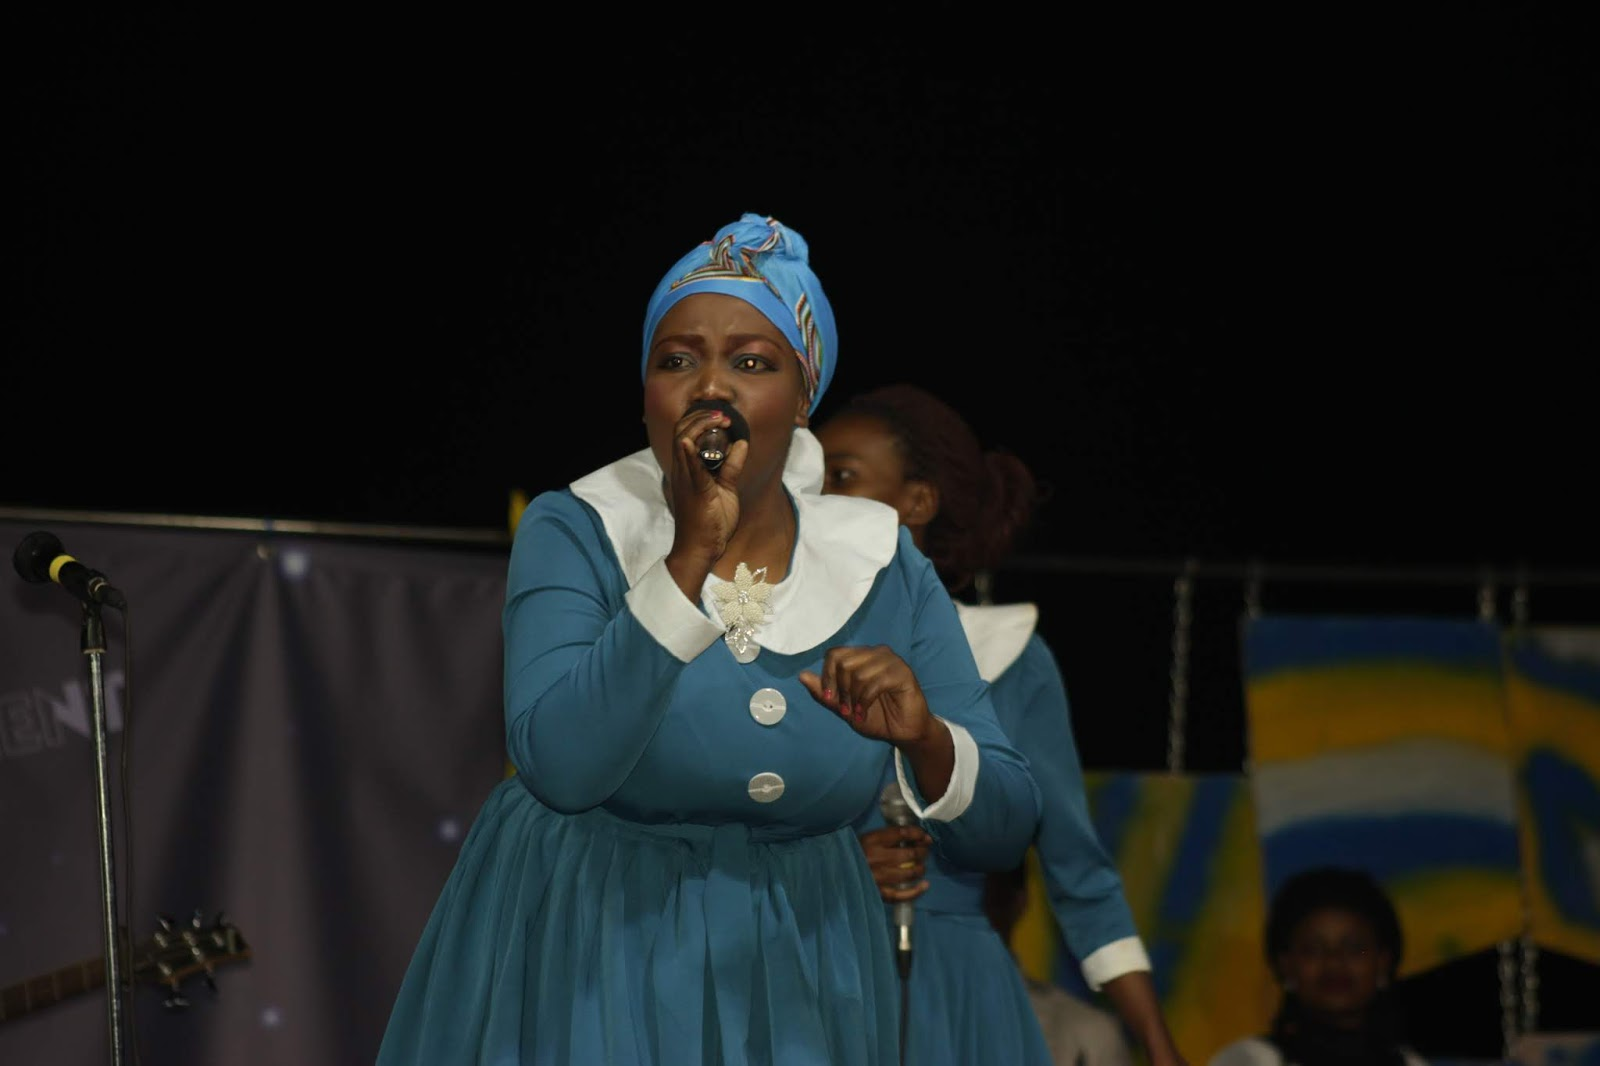 Bethany Pasinawako Ngolomi and Xtreme Afrique Choir At Tiyambuke 2018